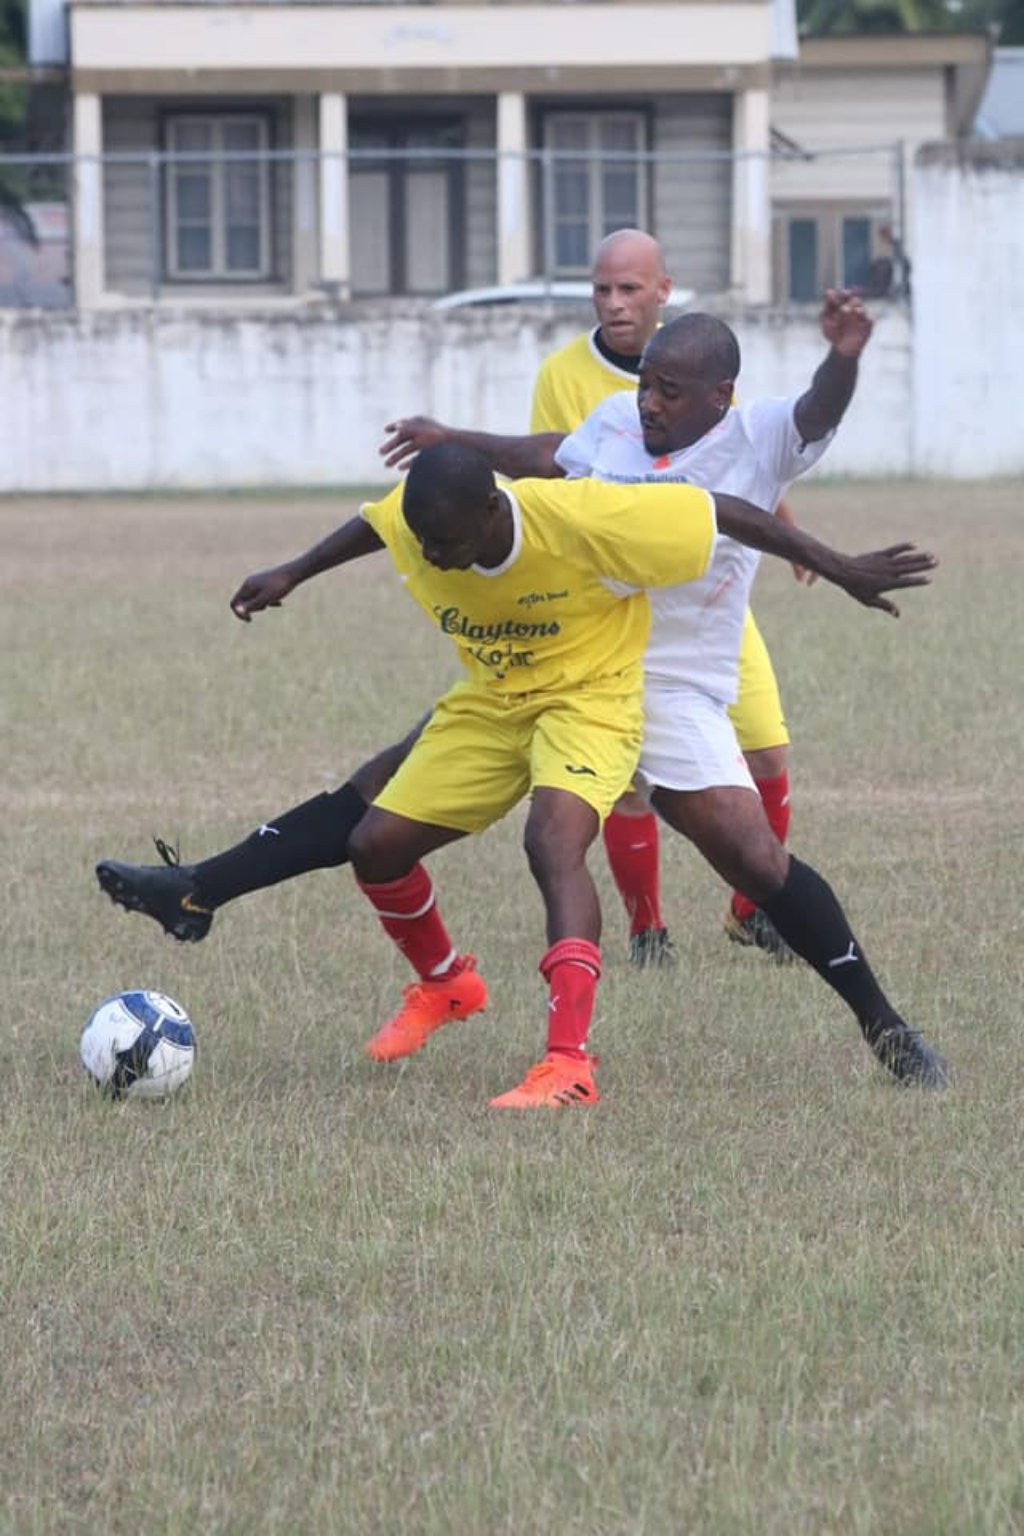 Three semifinal spots will be up for grabs this weekend in the Old Boys League Champions Cup